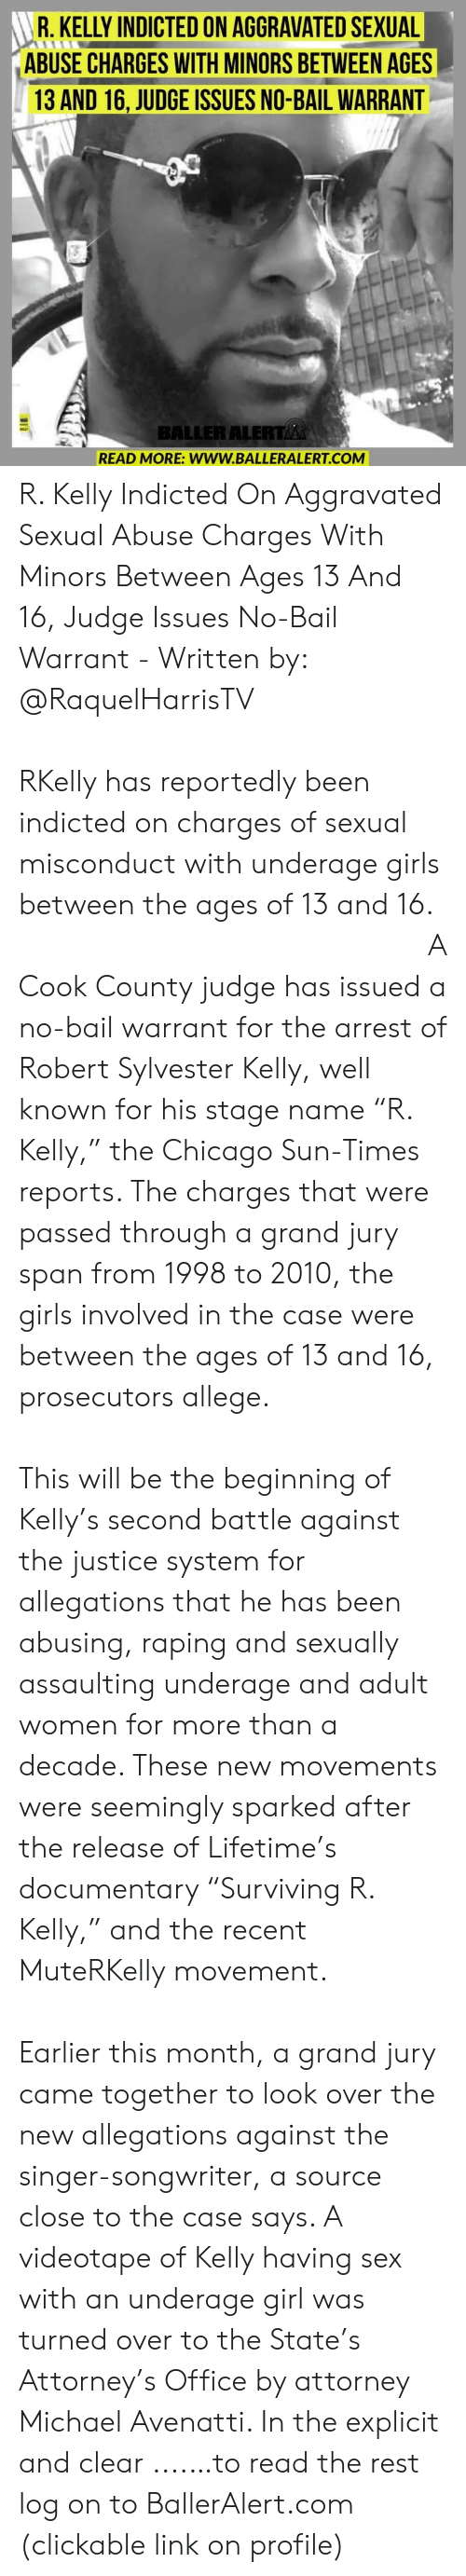 "R. Kelly: R. KELLY INDICTED ON AGGRAVATED SEXUAL  ABUSE CHARGES WITH MINORS BETWEEN AGES  13 AND 16, JUDGE ISSUES NO-BAIL WARRANT  BALLER ALERT  READ MORE: www.BALLERALERT.COM R. Kelly Indicted On Aggravated Sexual Abuse Charges With Minors Between Ages 13 And 16, Judge Issues No-Bail Warrant - Written by: @RaquelHarrisTV ⠀⠀⠀⠀⠀⠀⠀⠀⠀ ⠀⠀⠀⠀⠀⠀⠀⠀⠀ RKelly has reportedly been indicted on charges of sexual misconduct with underage girls between the ages of 13 and 16. ⠀⠀⠀⠀⠀⠀⠀⠀⠀ ⠀⠀⠀⠀⠀⠀⠀⠀⠀ A Cook County judge has issued a no-bail warrant for the arrest of Robert Sylvester Kelly, well known for his stage name ""R. Kelly,"" the Chicago Sun-Times reports. The charges that were passed through a grand jury span from 1998 to 2010, the girls involved in the case were between the ages of 13 and 16, prosecutors allege. ⠀⠀⠀⠀⠀⠀⠀⠀⠀ ⠀⠀⠀⠀⠀⠀⠀⠀⠀ This will be the beginning of Kelly's second battle against the justice system for allegations that he has been abusing, raping and sexually assaulting underage and adult women for more than a decade. These new movements were seemingly sparked after the release of Lifetime's documentary ""Surviving R. Kelly,"" and the recent MuteRKelly movement. ⠀⠀⠀⠀⠀⠀⠀⠀⠀ ⠀⠀⠀⠀⠀⠀⠀⠀⠀ Earlier this month, a grand jury came together to look over the new allegations against the singer-songwriter, a source close to the case says. A videotape of Kelly having sex with an underage girl was turned over to the State's Attorney's Office by attorney Michael Avenatti. In the explicit and clear ....…to read the rest log on to BallerAlert.com (clickable link on profile)"